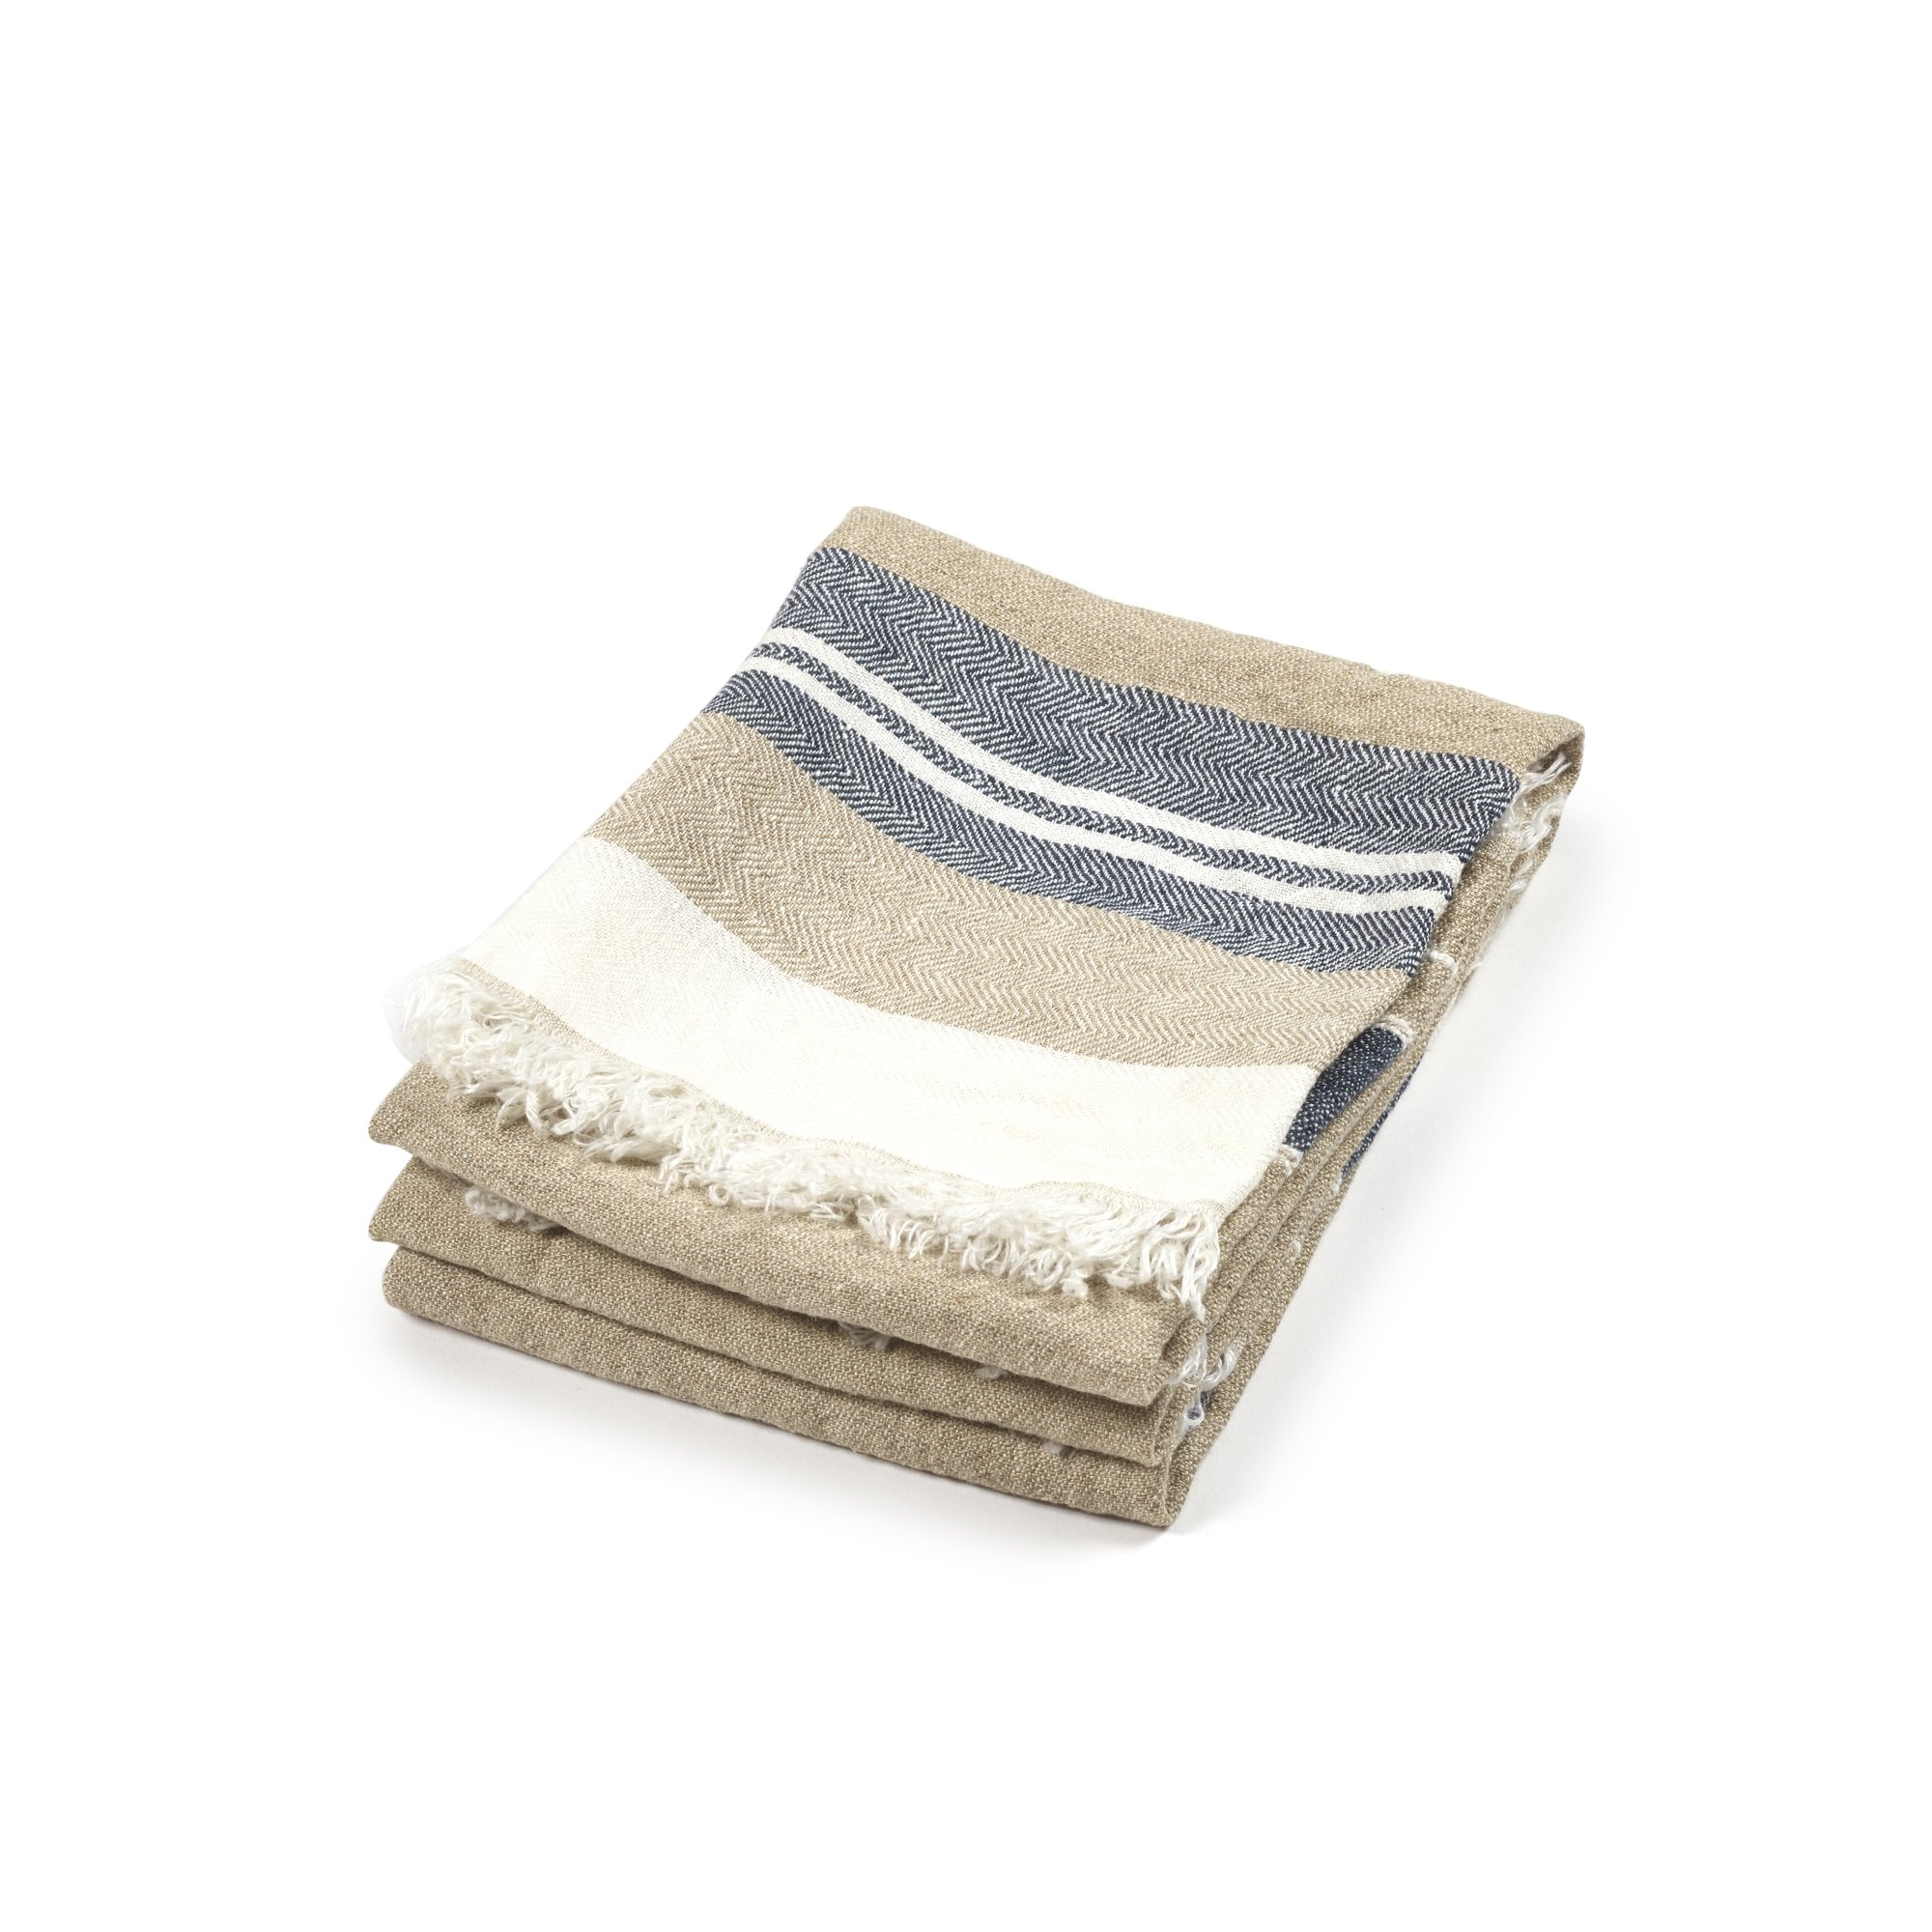 Small Towel: The Belgian Towel Small Fouta